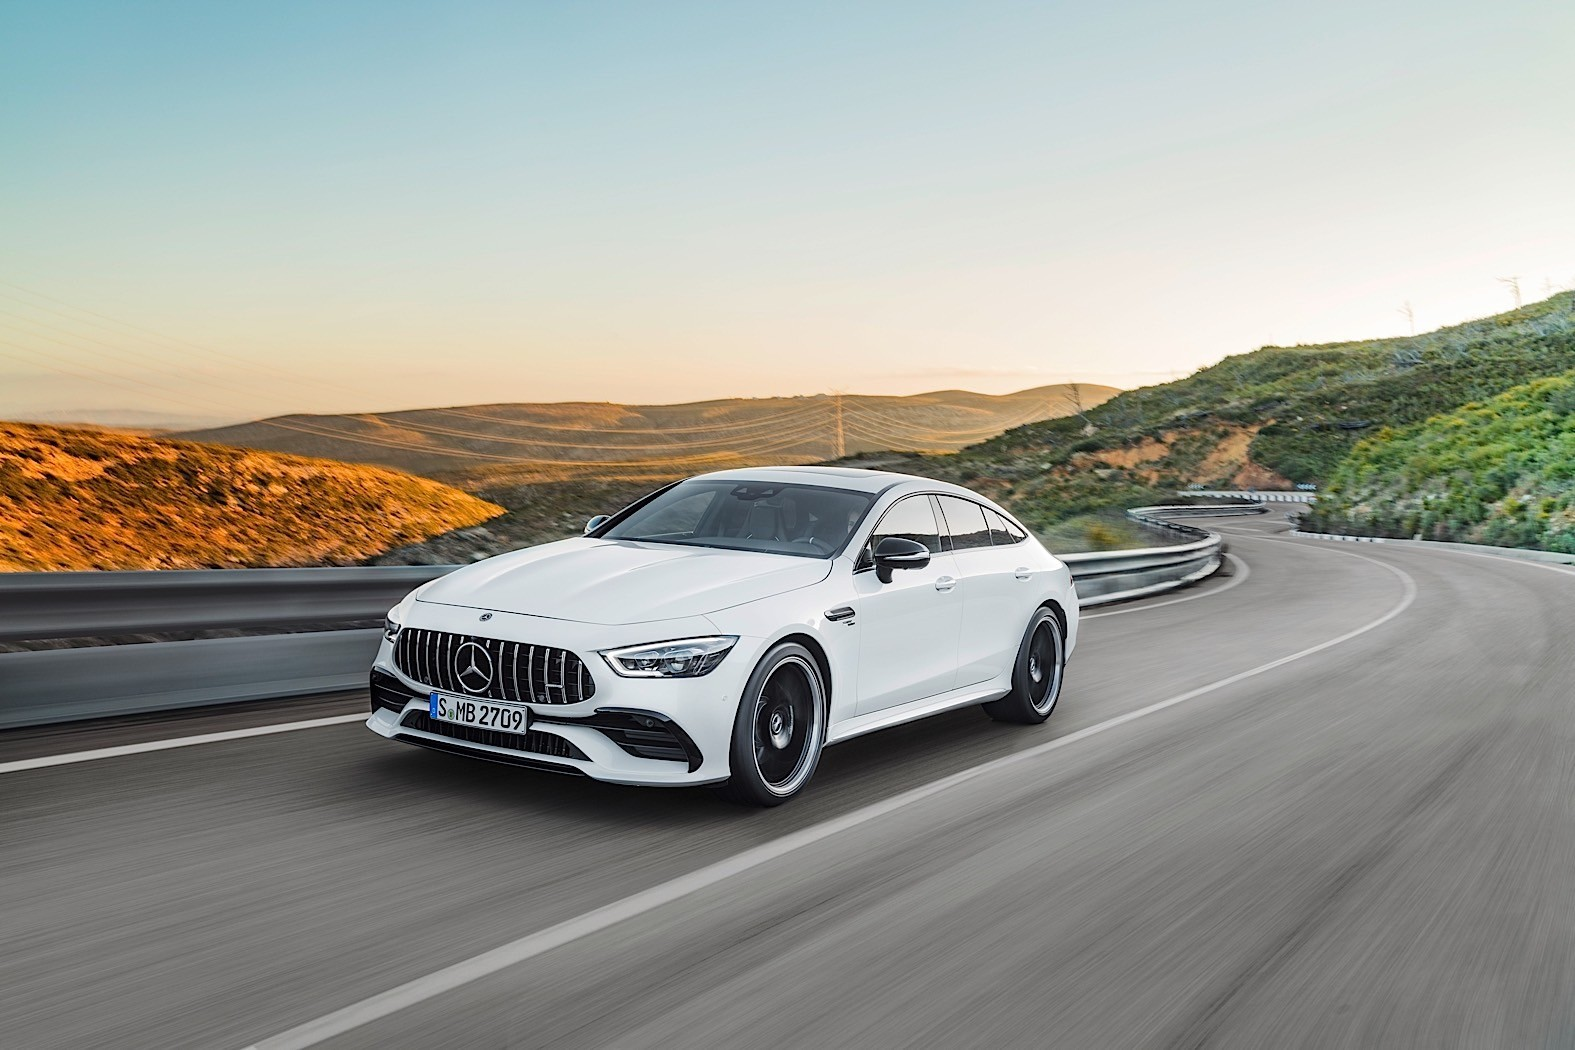 2019 mercedes amg gt 4 door coupe goes live in geneva for Mercedes benz 4 door